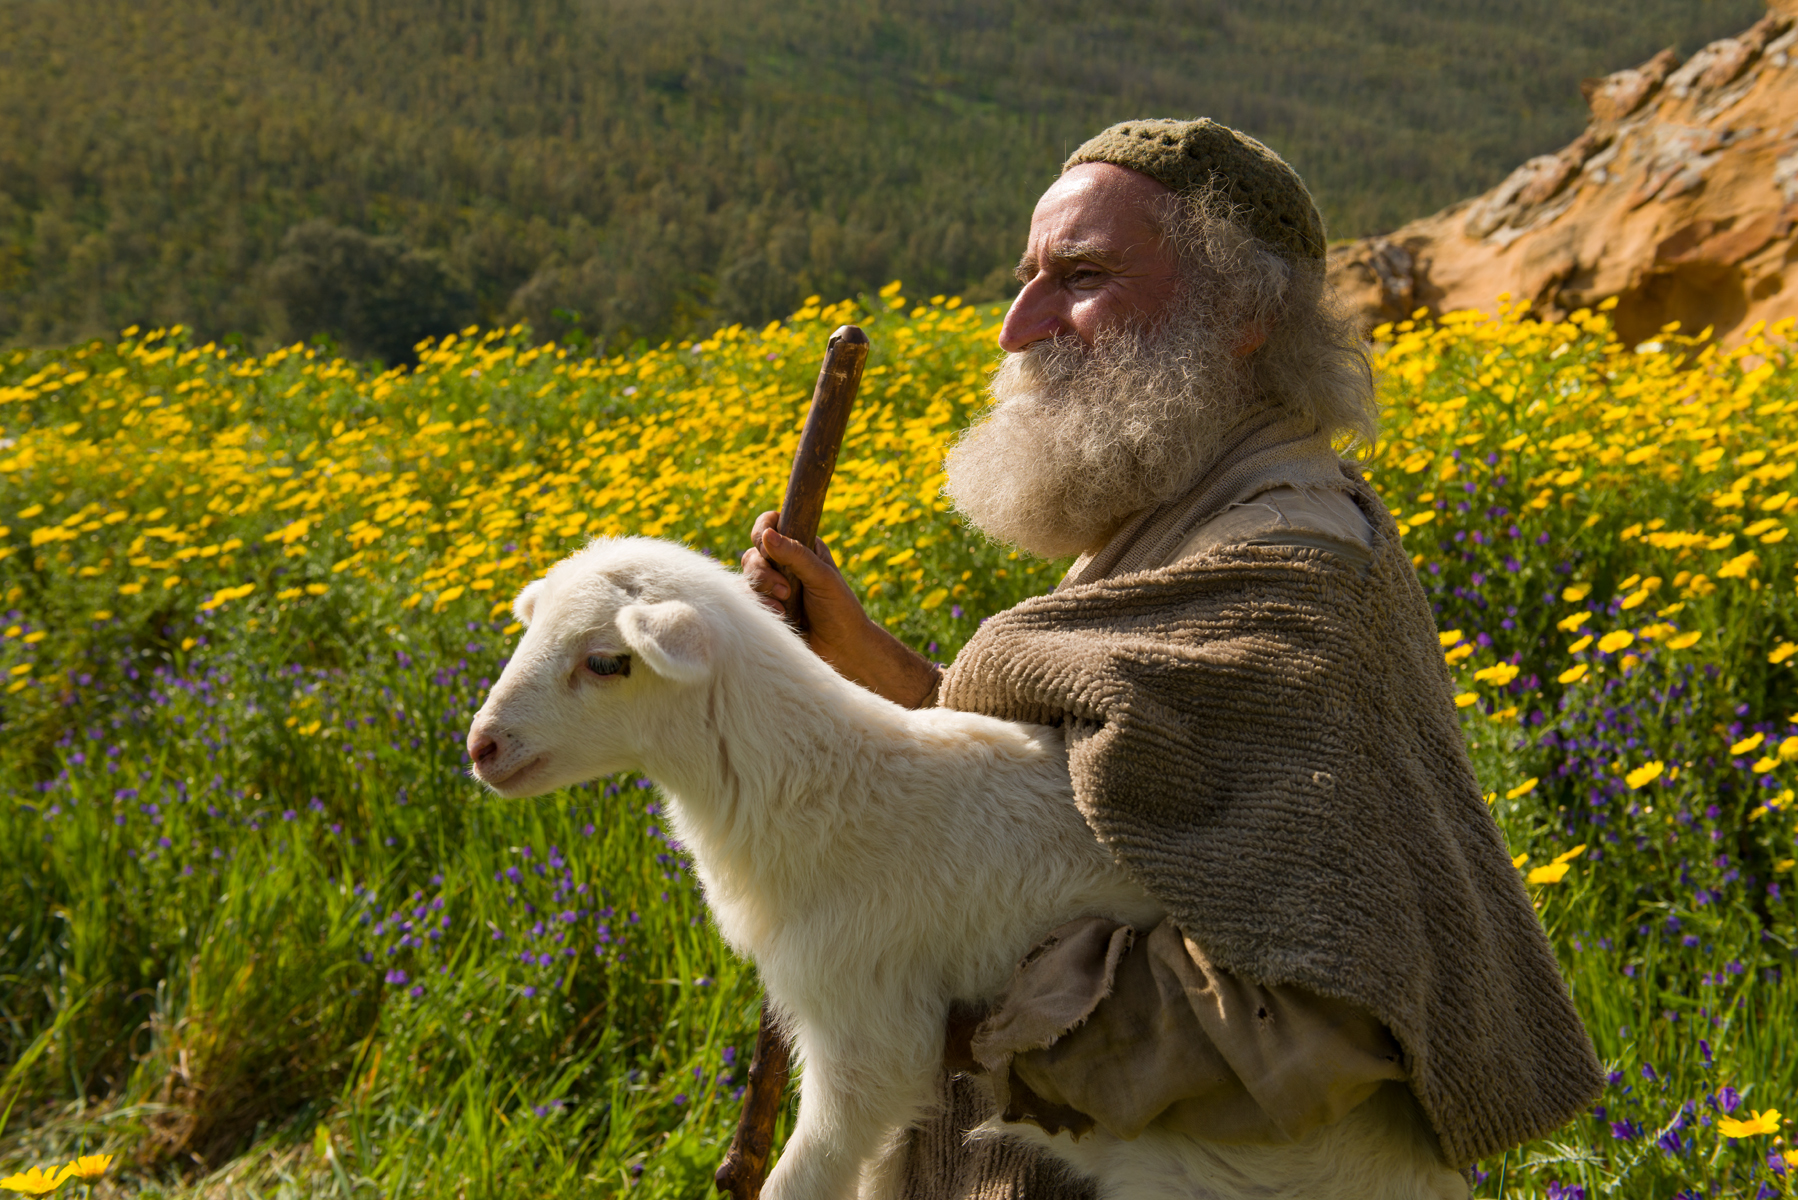 Jesus Declares the Parable of the Lost Sheep - Bible Videos - Jesus  Declares the Parable of the Lost Sheep